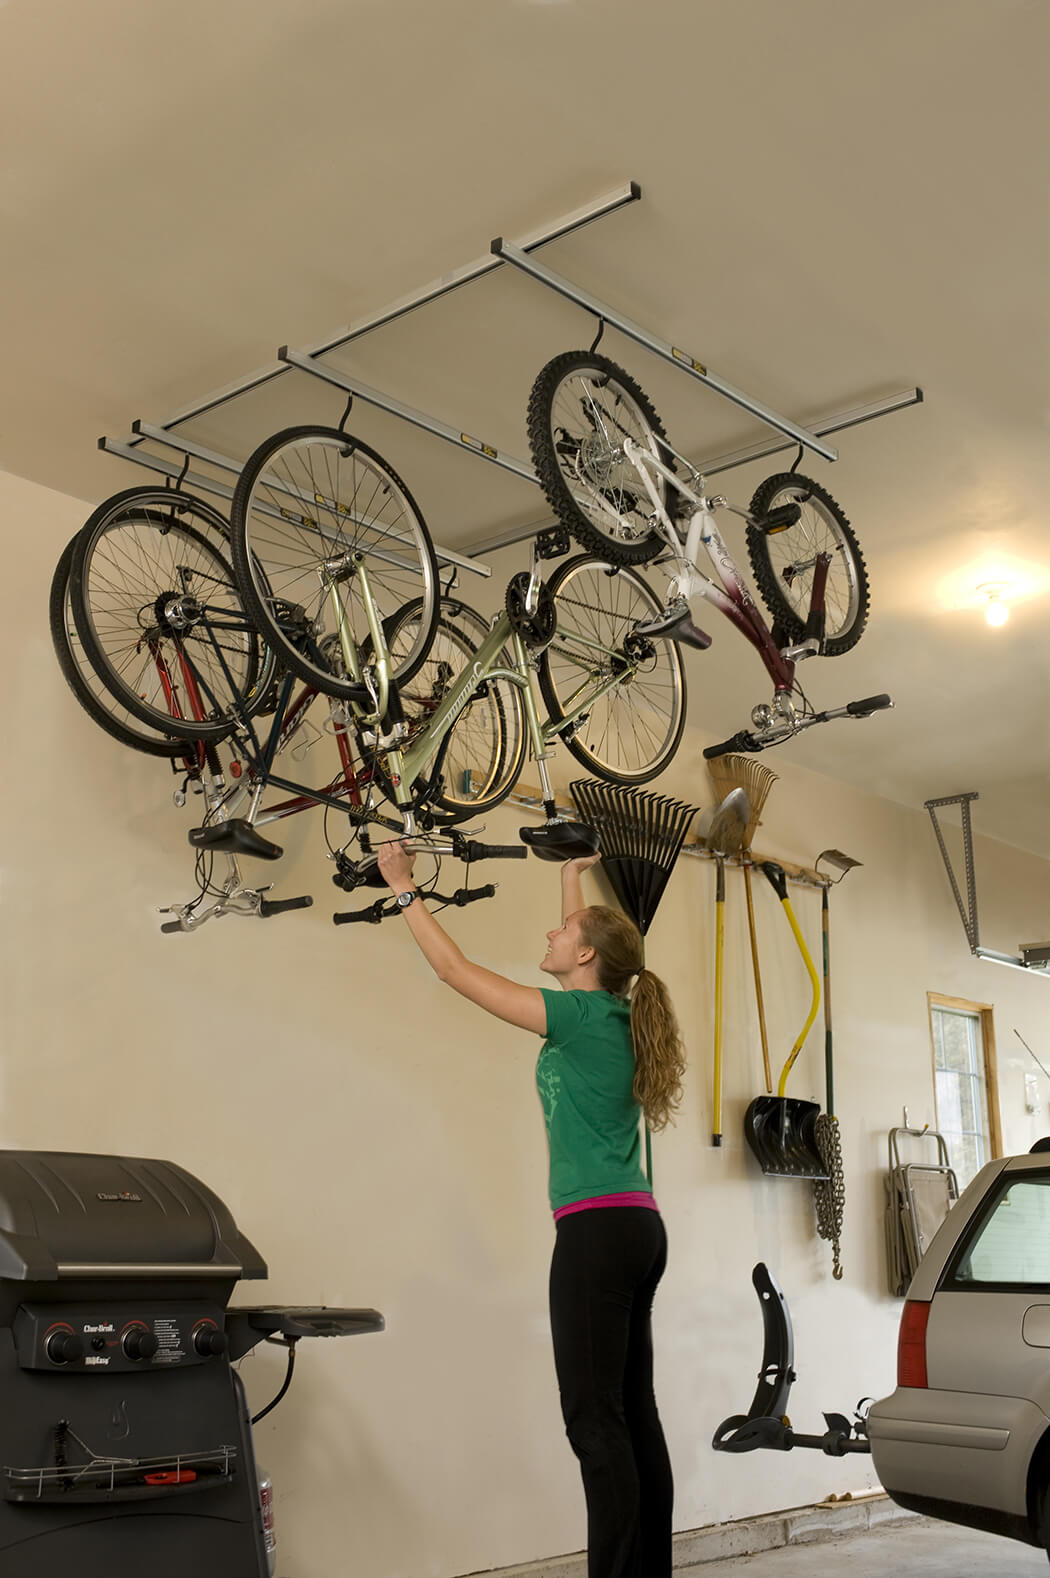 Amazing Design Of The Garage Bike Storage With White Iron Hanging Bike Place At The Ceiling With Three Bikes